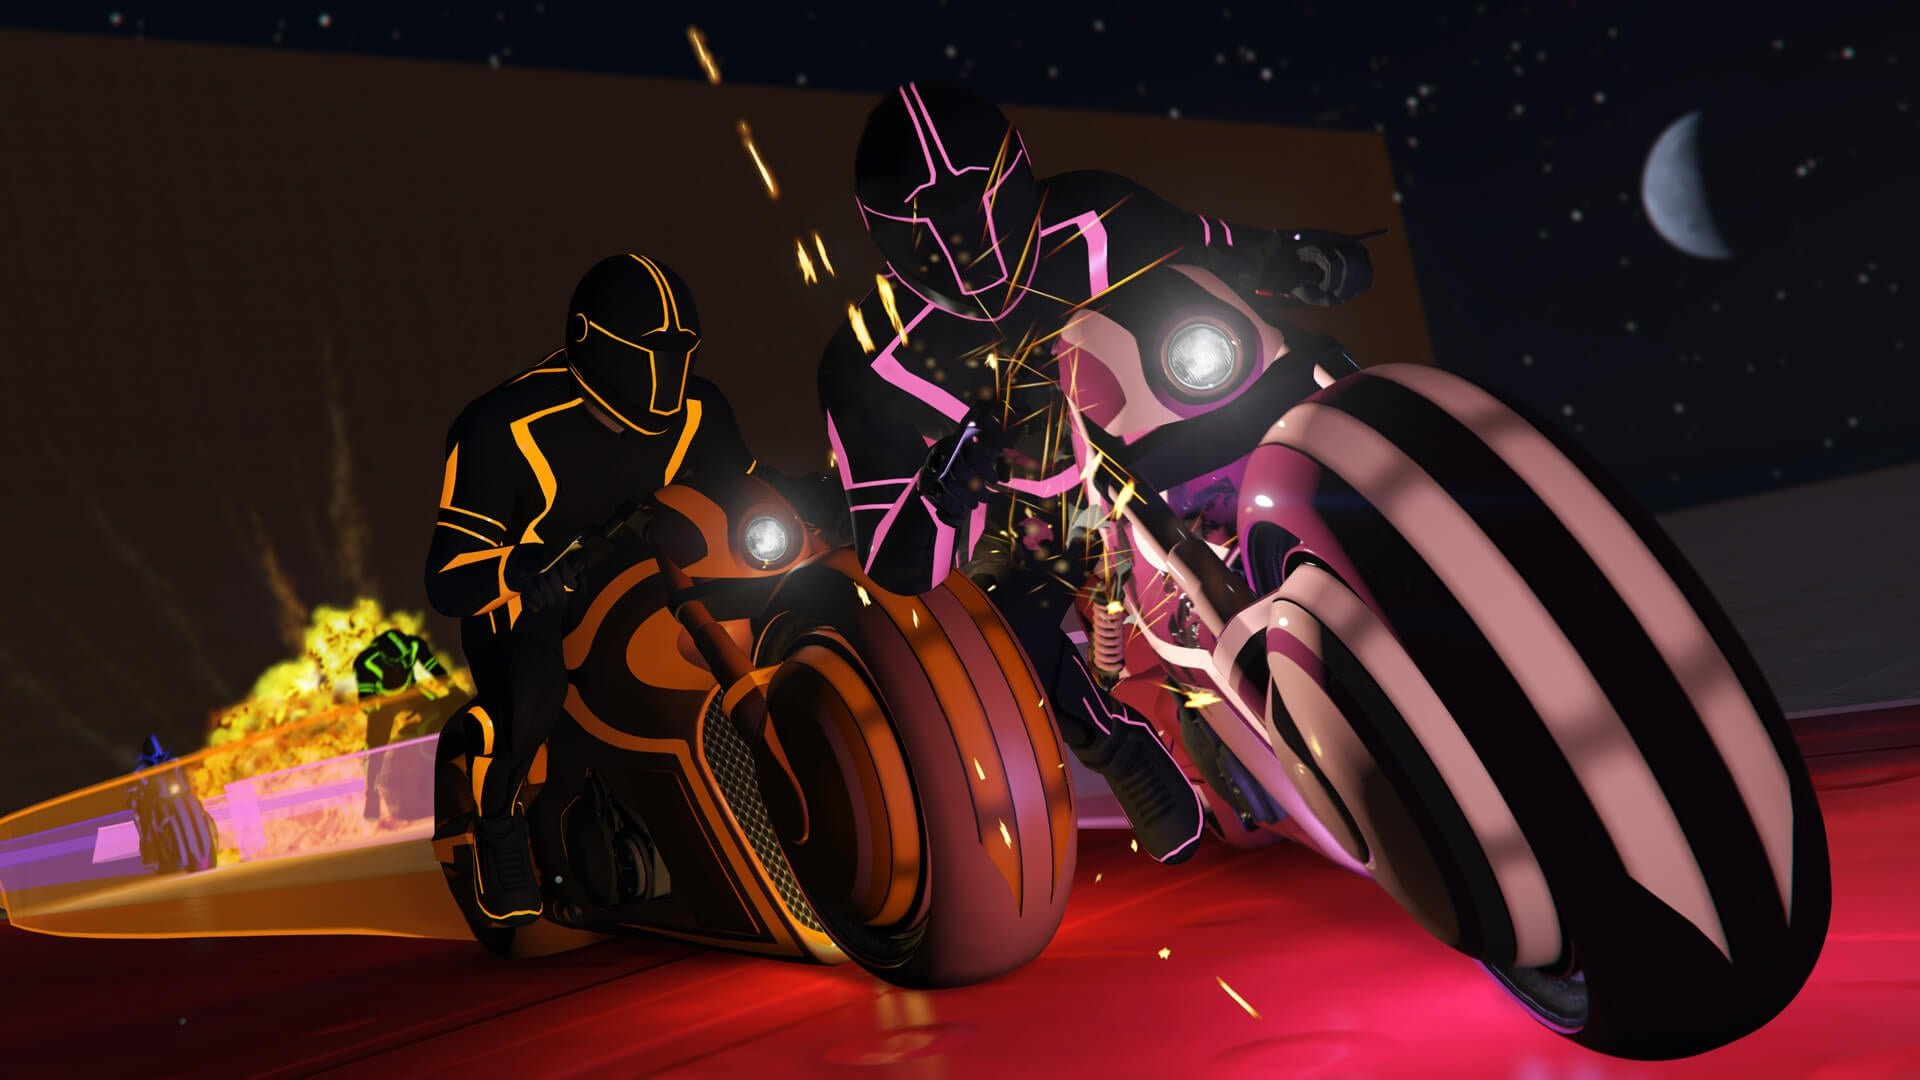 GTA Online: Deadline Offers Tron-Like Bikes and a New Adversary Mode